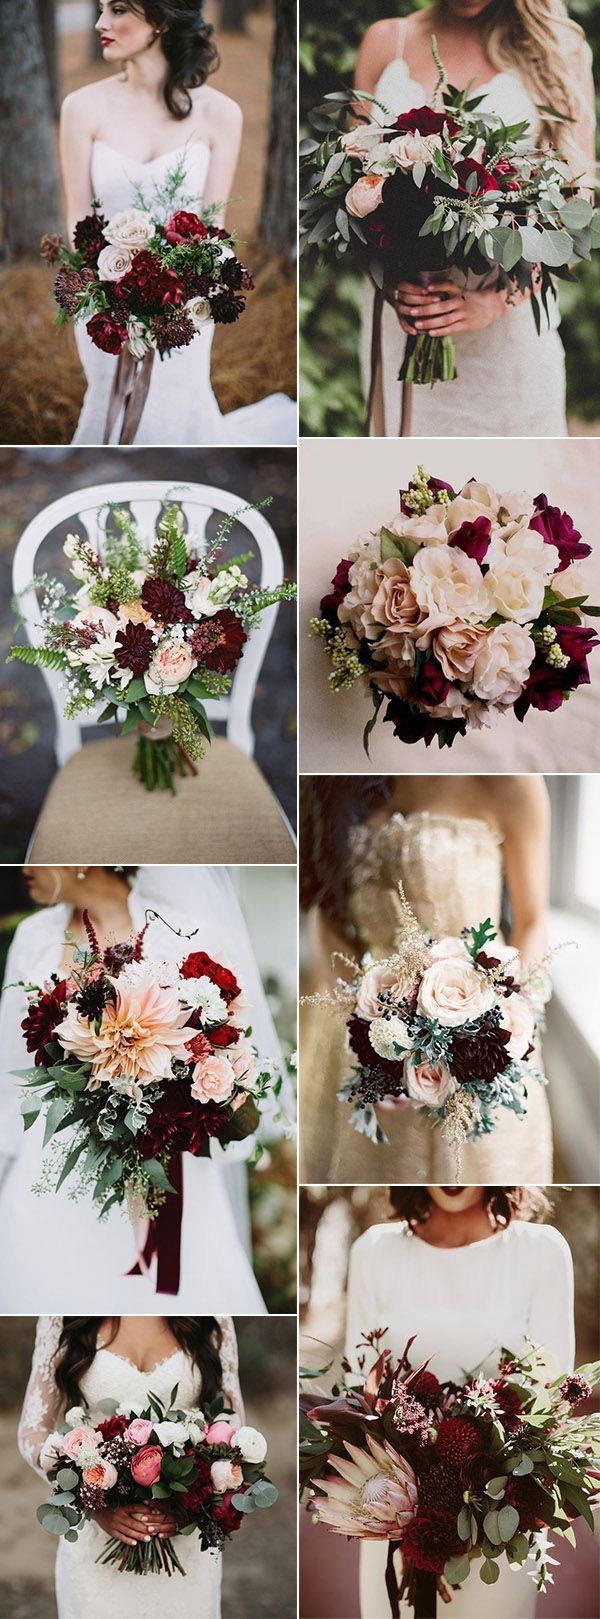 If you want to do a maroon type coloured dress for your bridesmaids, these flowers are pretty & incorporate that colour